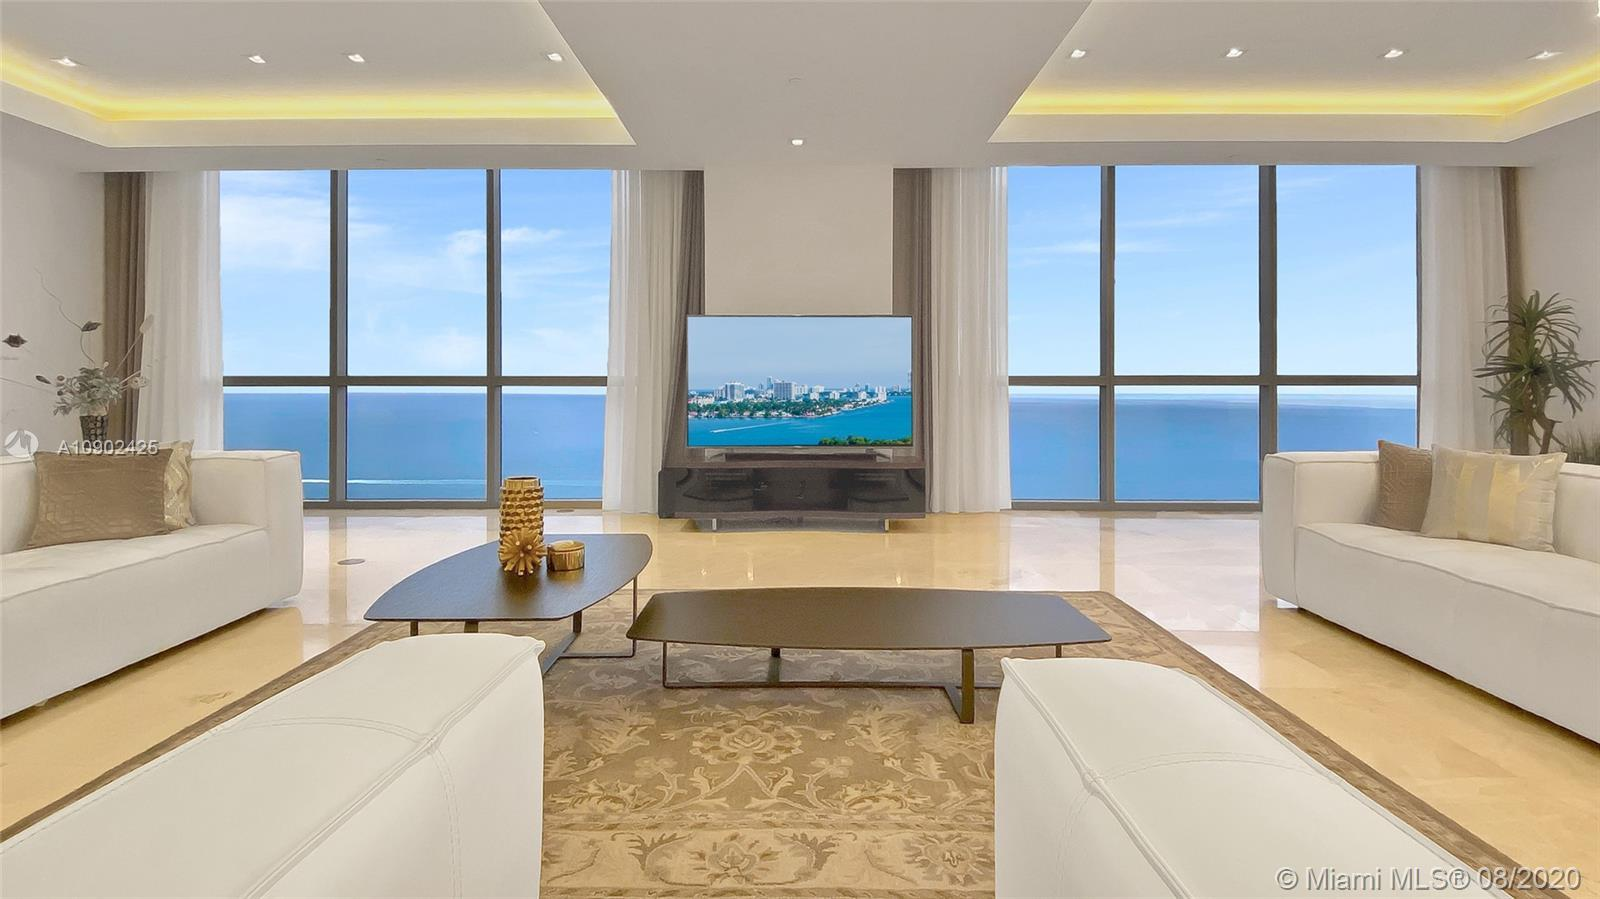 17749 Collins Ave 3901/3902, Sunny Isles Beach, FL, 33160